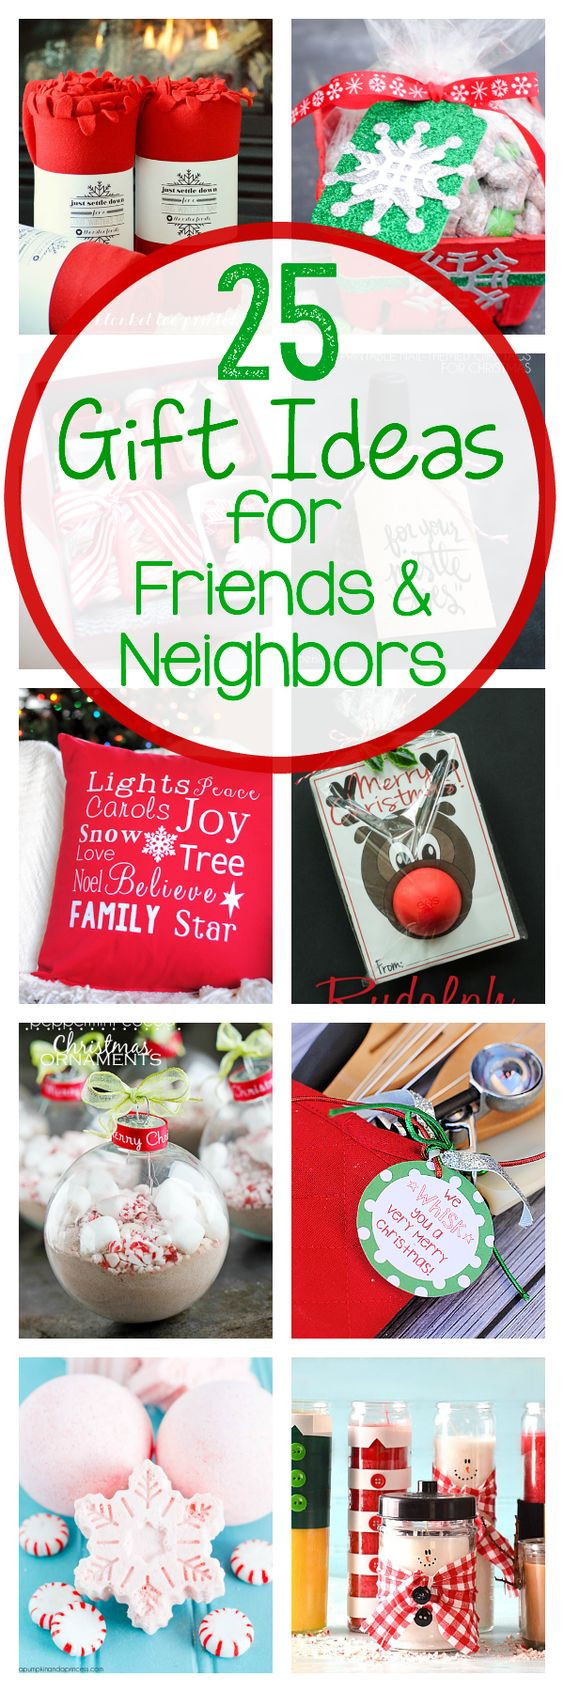 Best ideas about Gift Ideas Friends . Save or Pin 25 Gift Ideas for Friends & Neighbors Now.